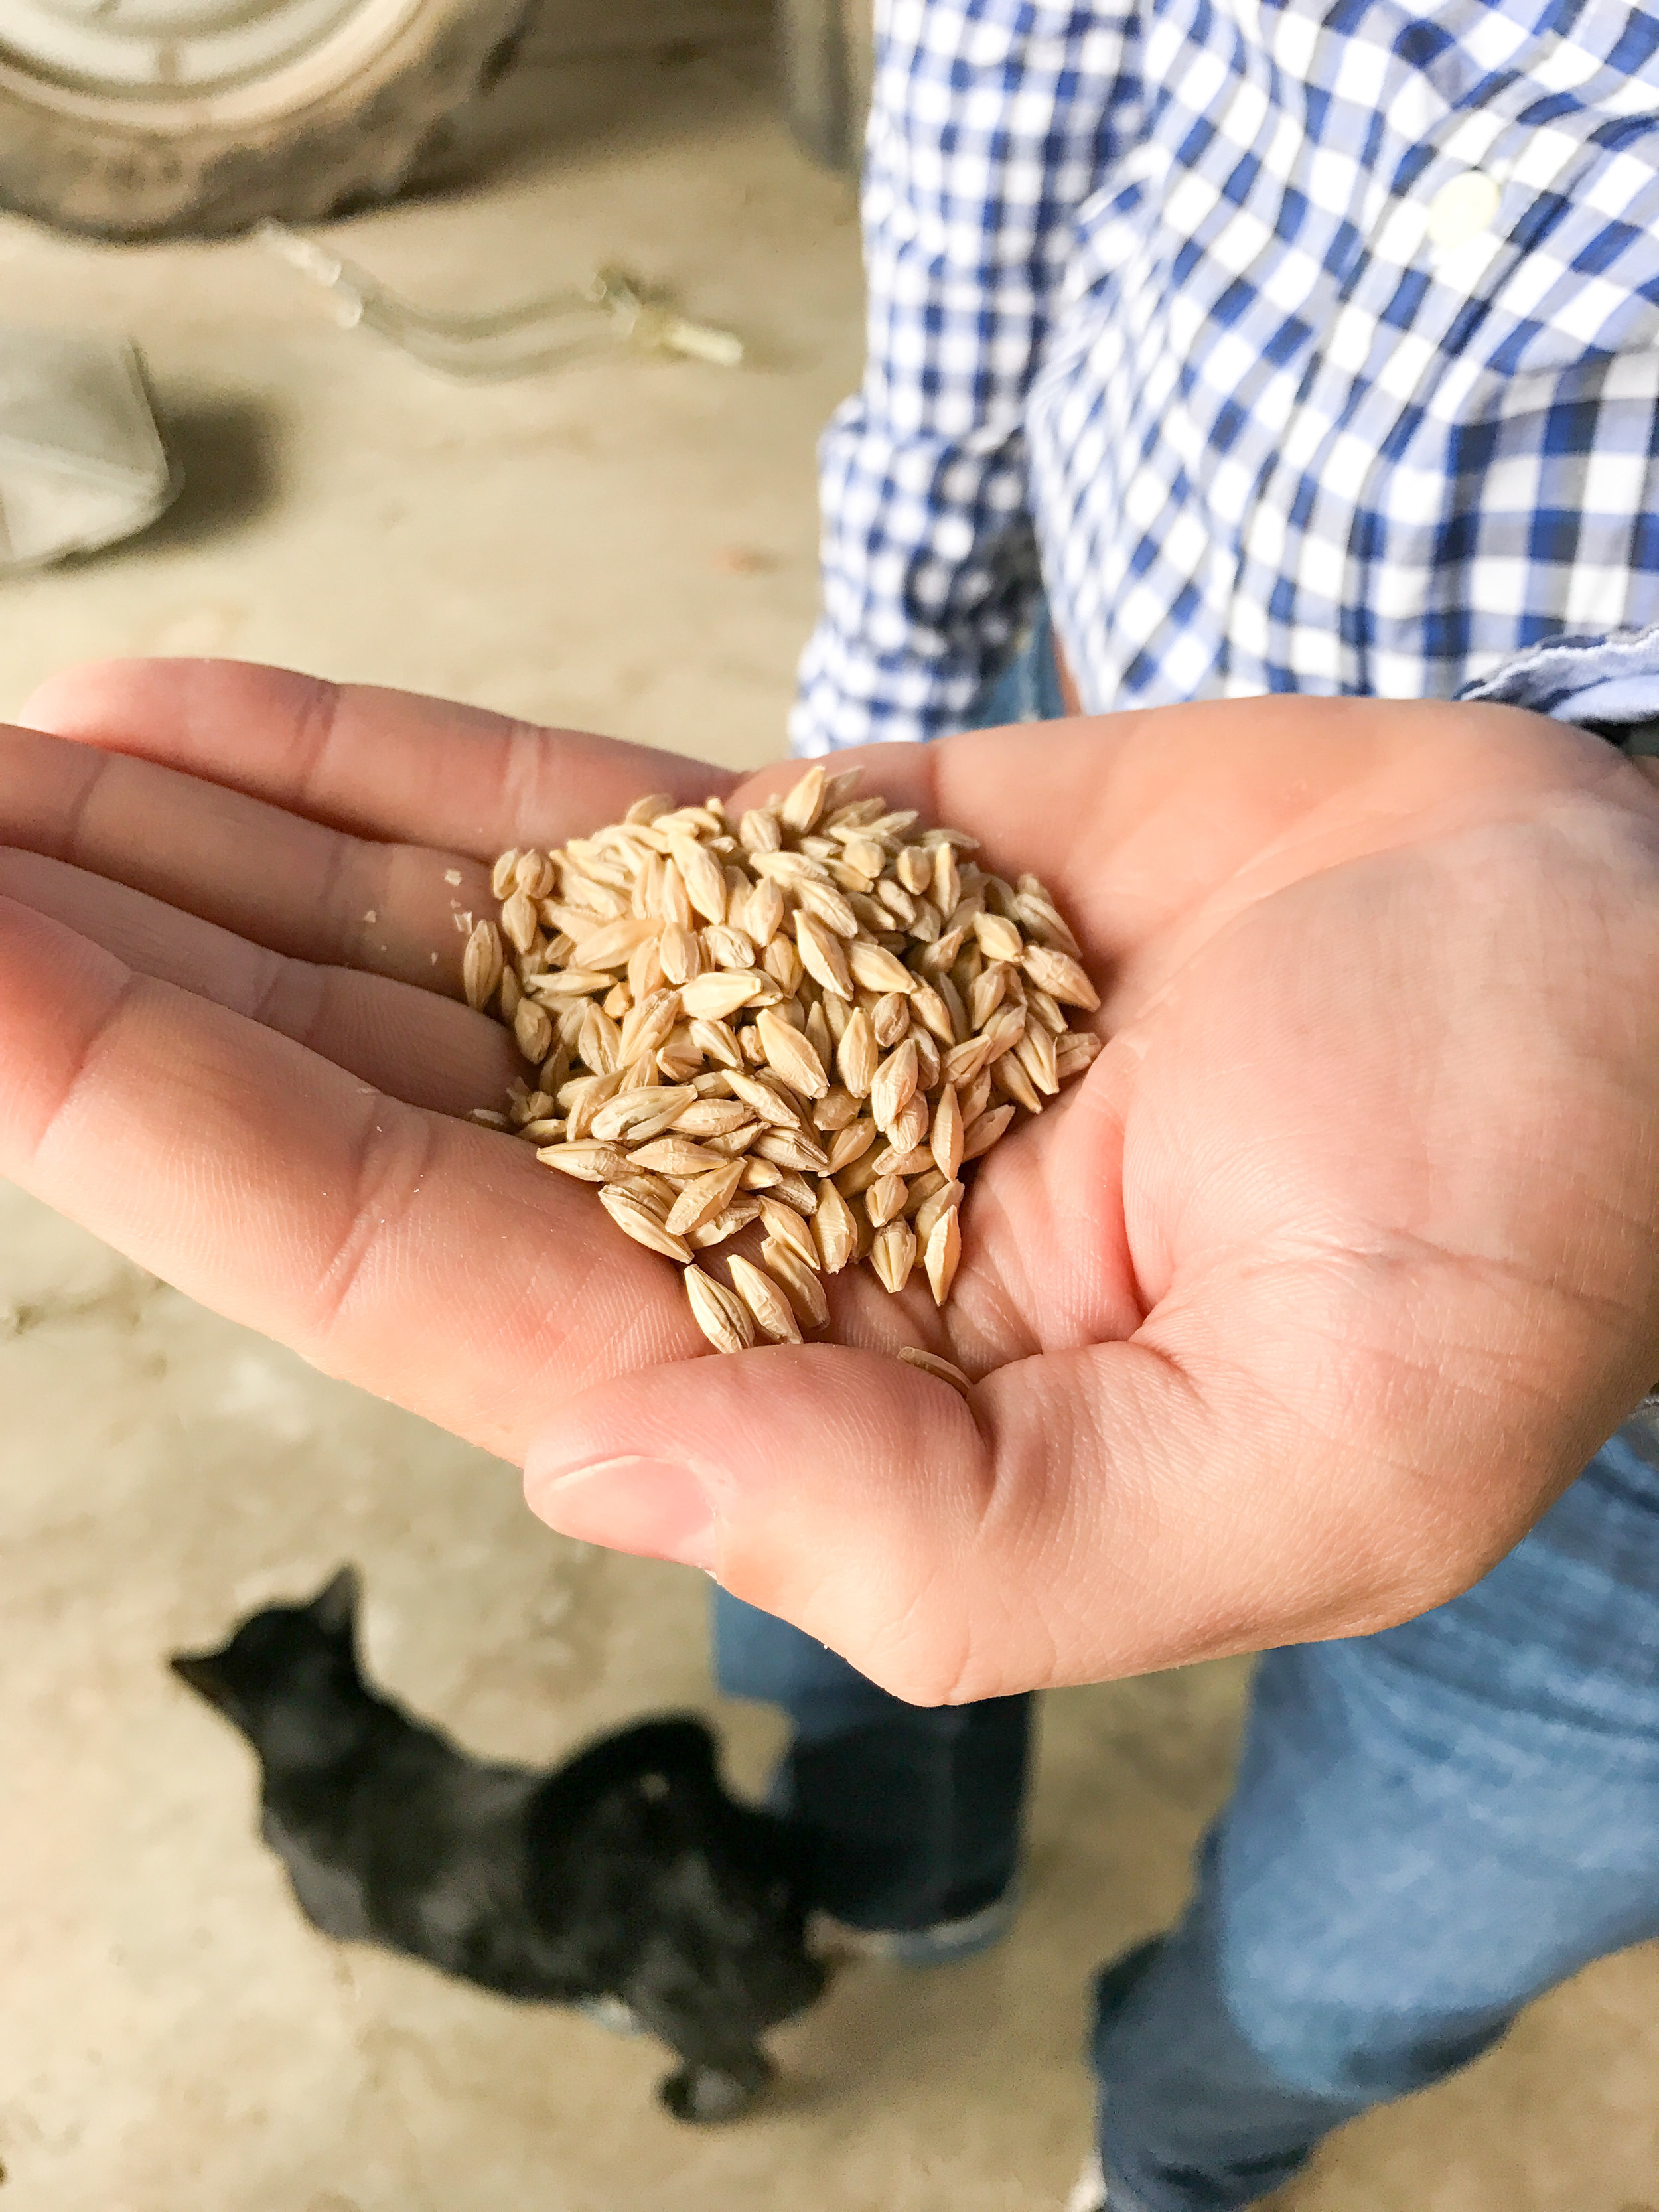 Andrew holding barley grain. Photo by Erica Simek Sloniker